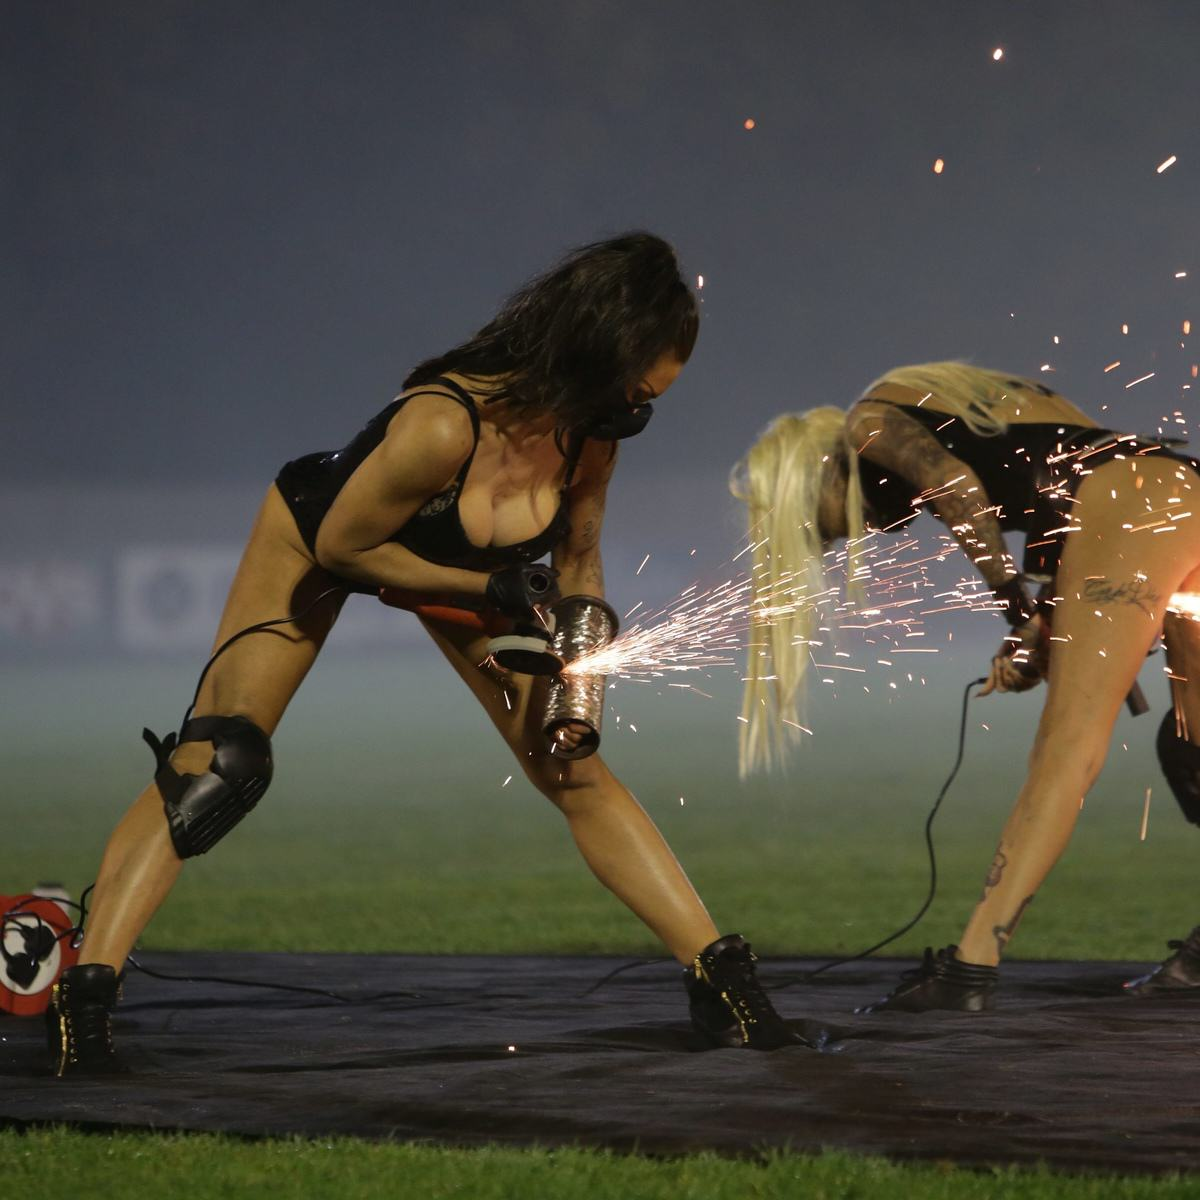 Mayor Hired Leather Clad Stunt Women For Family Bonfire Night Display UNILAD SWNS SPARKS 01970677